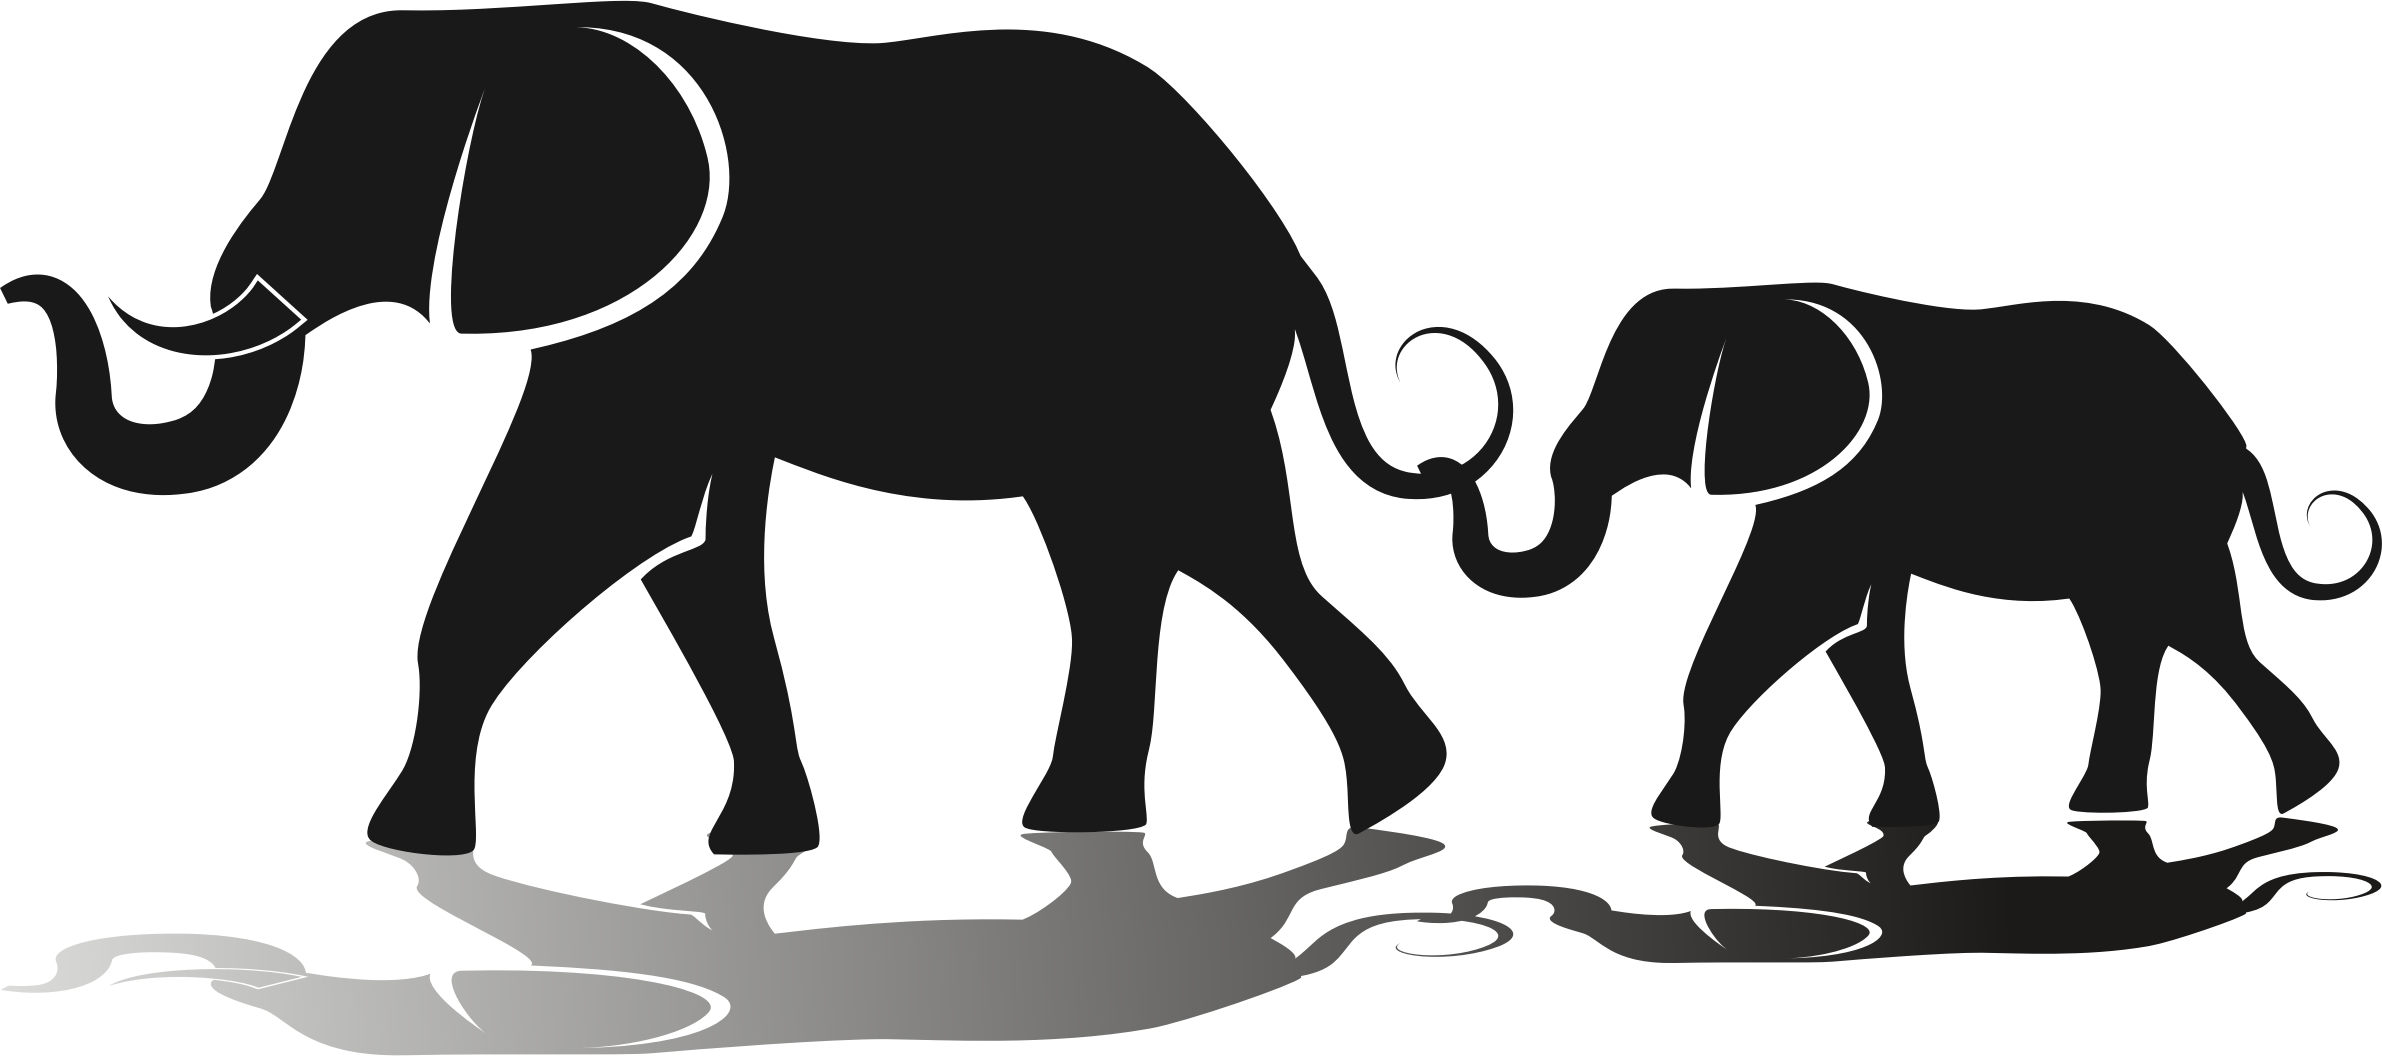 Families clipart african american. Silhouette elephant clip art